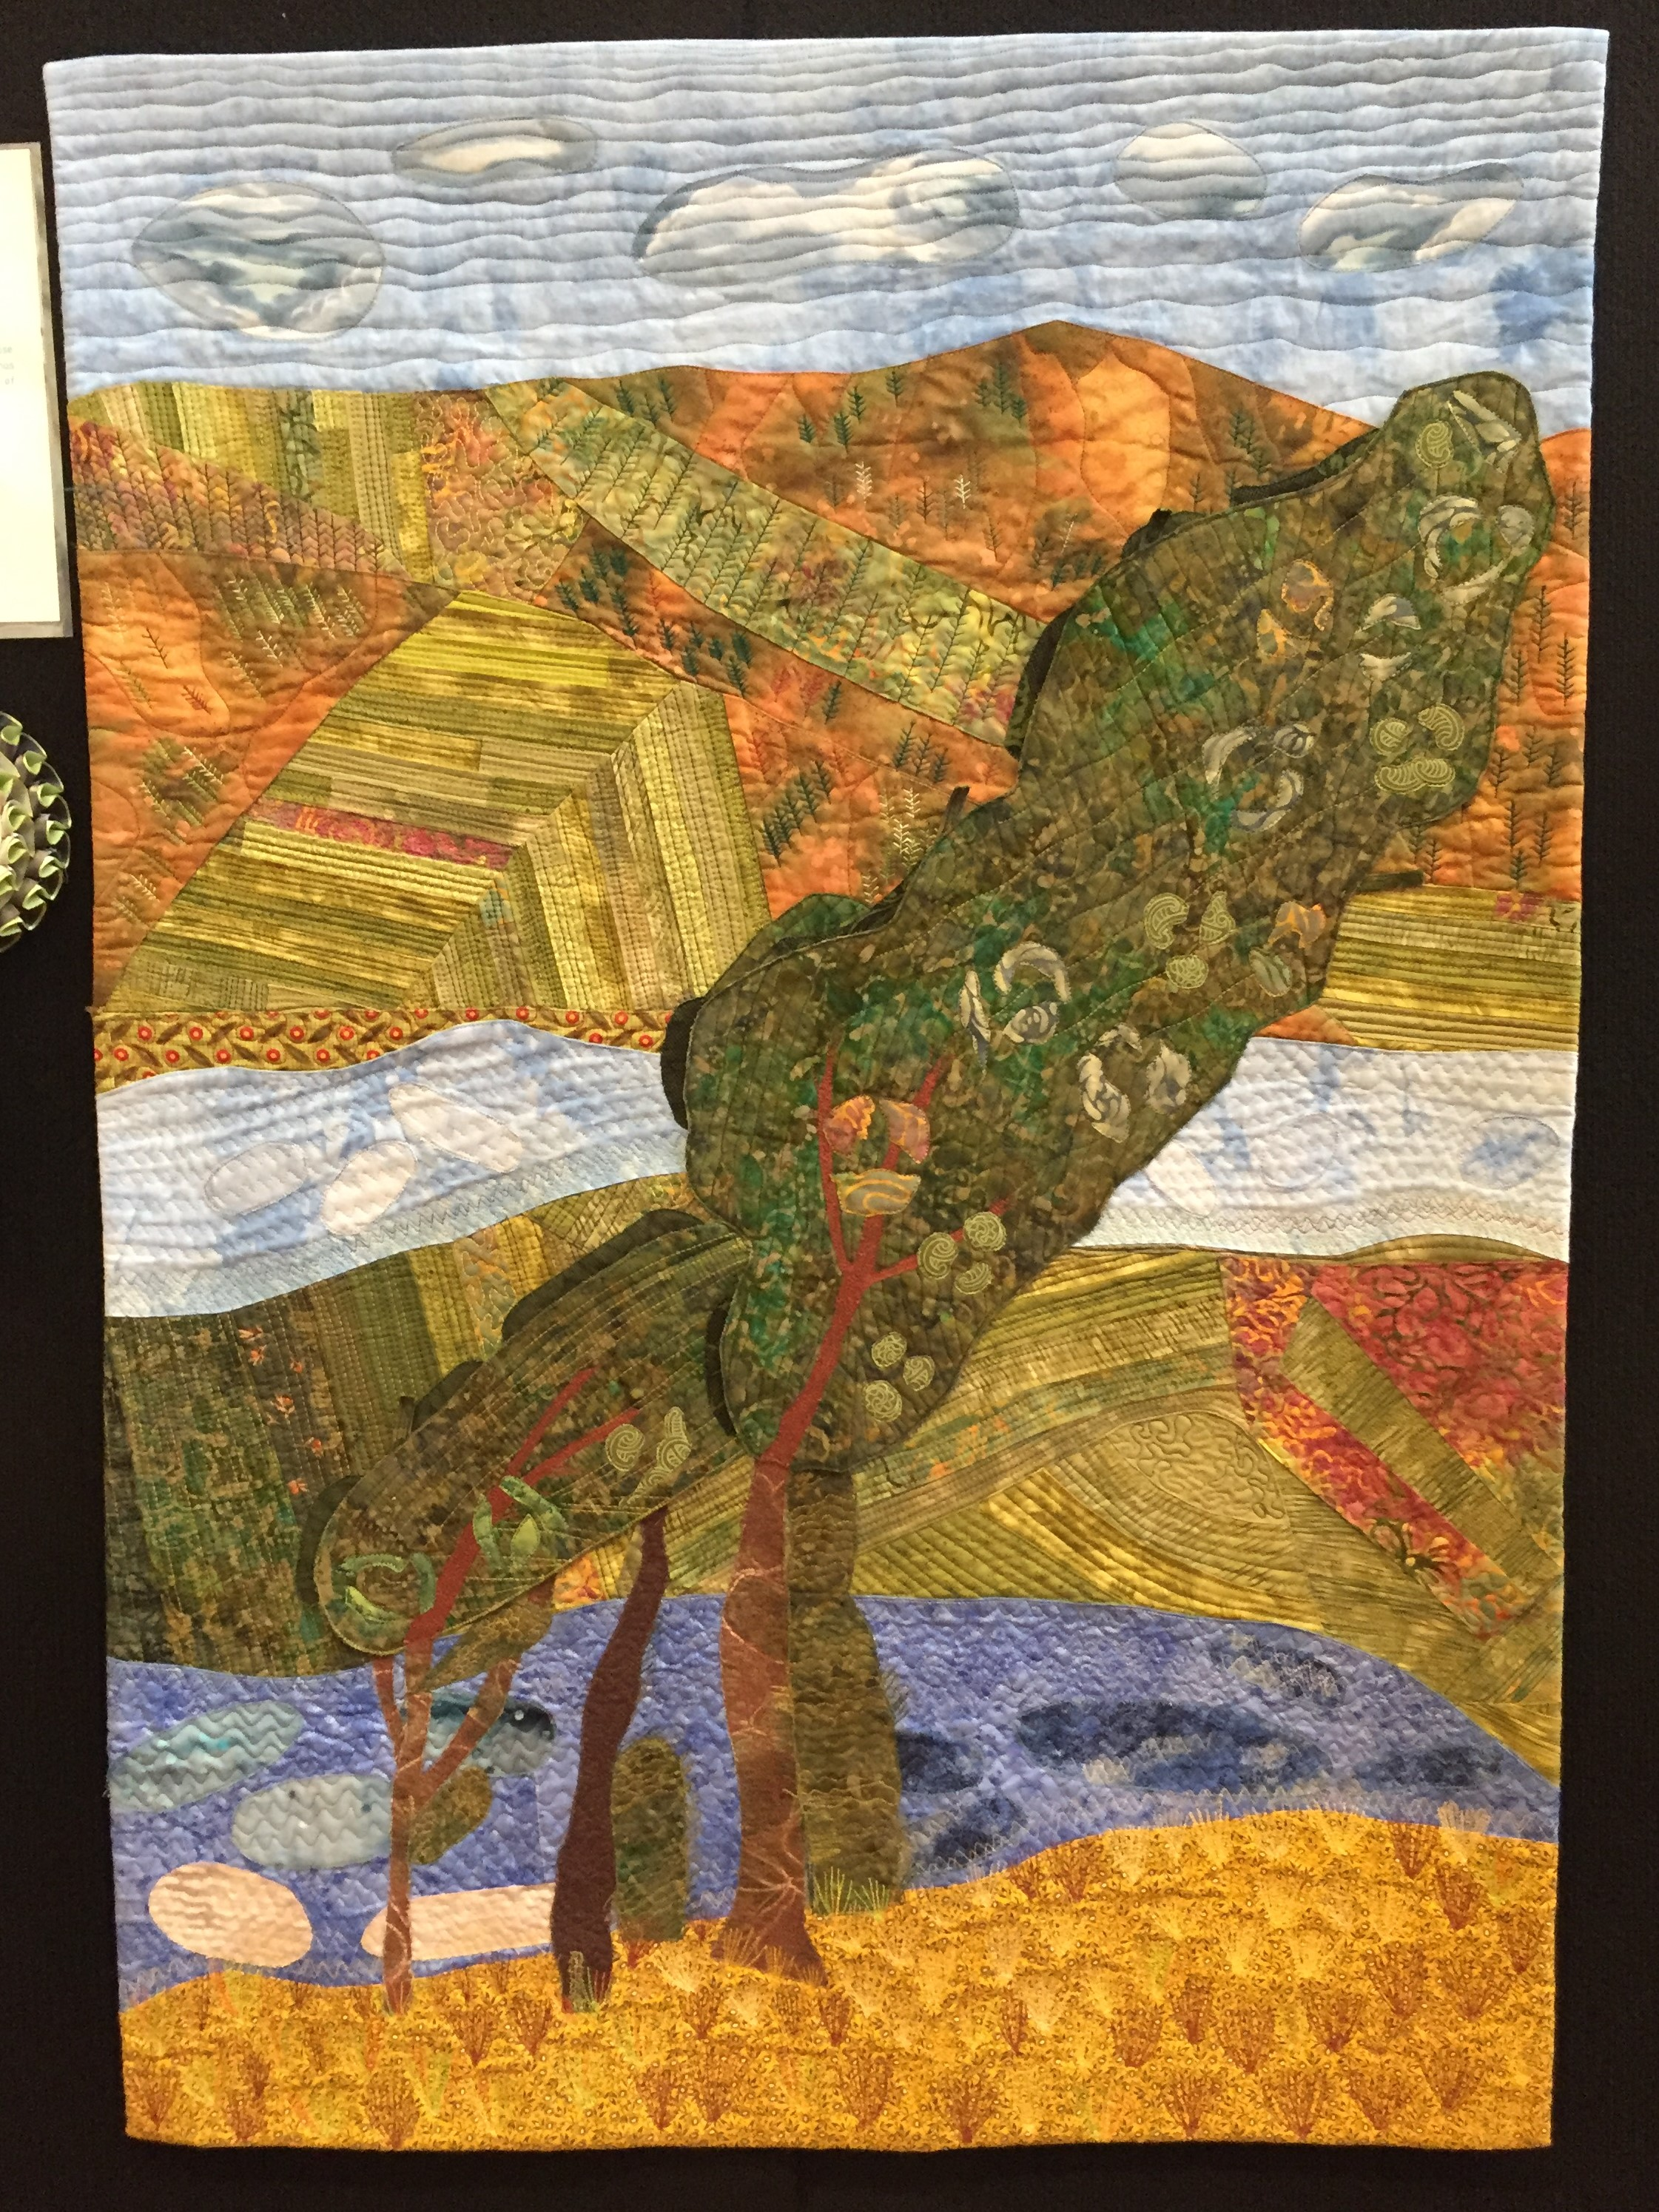 Sou'wester - Maria Rohs - Landscape/ Pictorial MERIT - Sponsored by Mallee Textiles